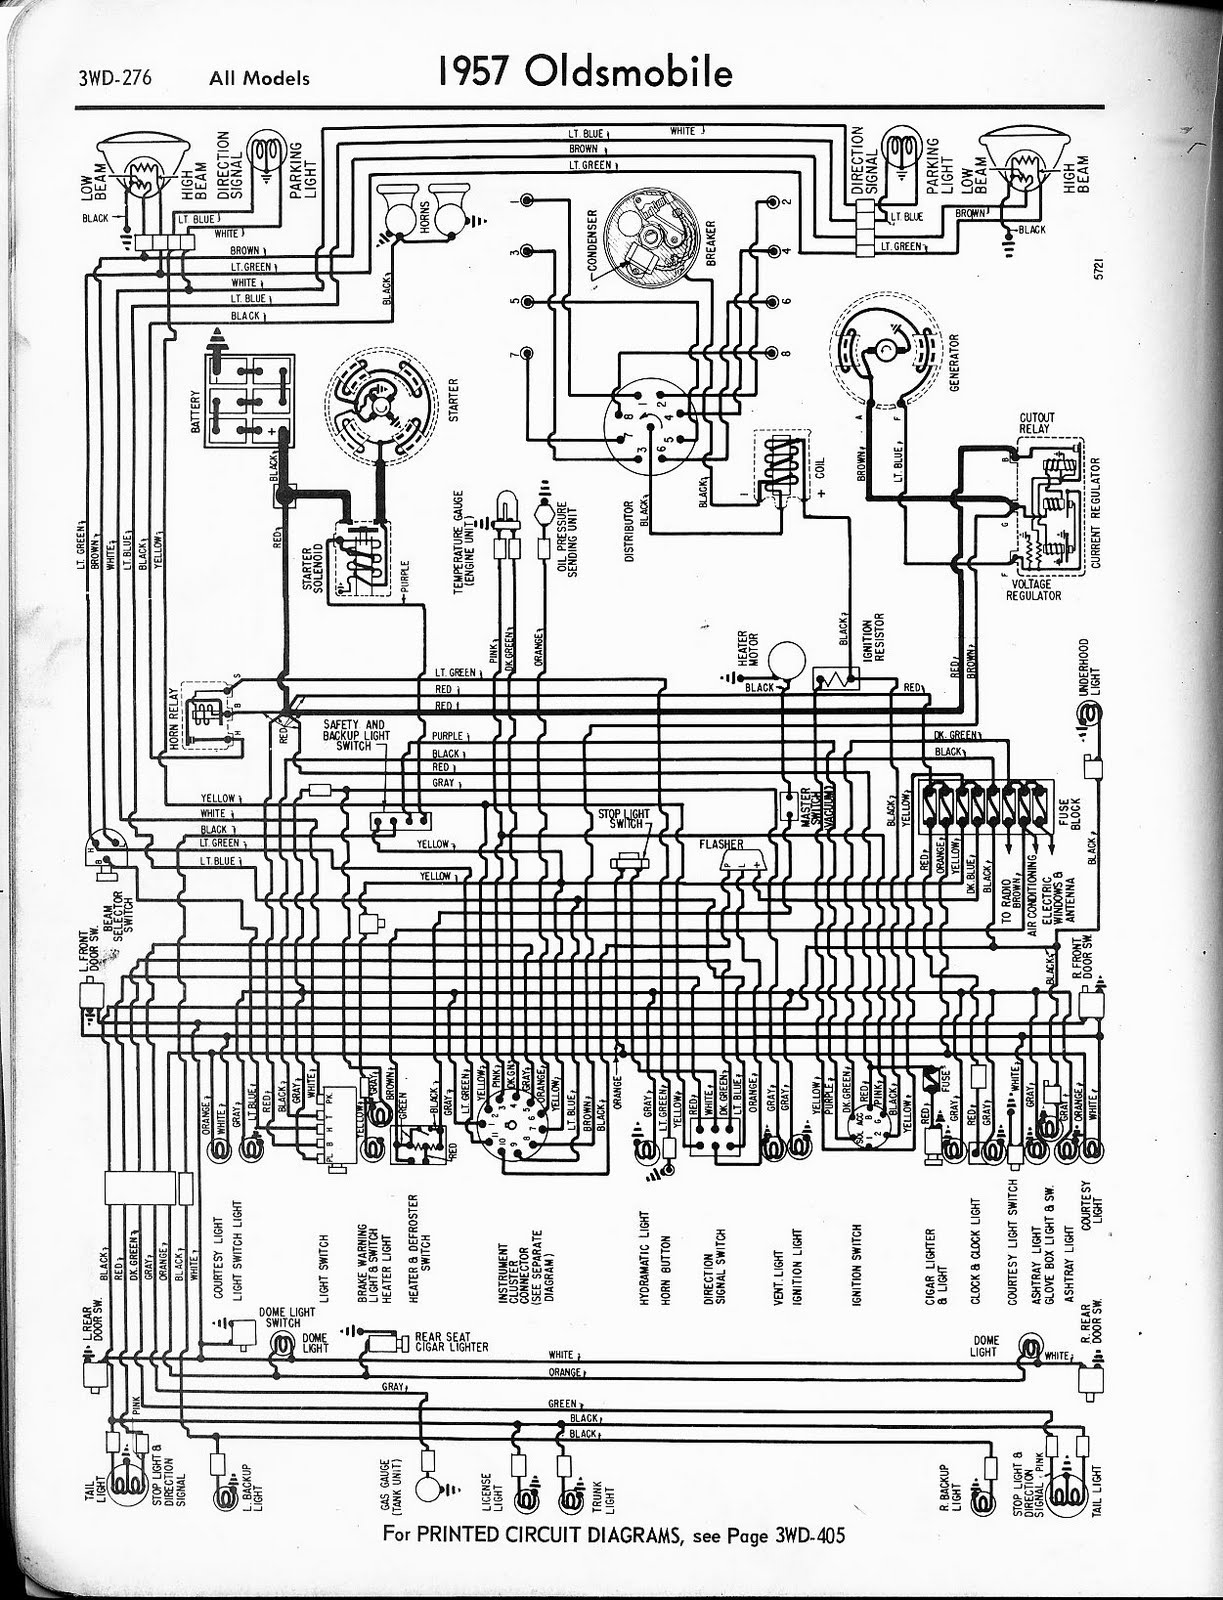 2000 Oldsmobile Vada Wiring Diagram | Wiring Liry on mitsubishi wiring diagrams, plymouth wiring diagrams, alfa romeo wiring diagrams, jeep wiring diagrams, triumph wiring diagrams, gem wiring diagrams, chrysler wiring diagrams, delorean wiring diagrams, viking wiring diagrams, lincoln wiring diagrams, imperial wiring diagrams, studebaker wiring diagrams, international wiring diagrams, mini cooper wiring diagrams, ktm wiring diagrams, dodge wiring diagrams, austin healey wiring diagrams, gm wiring diagrams, honda wiring diagrams, excalibur wiring diagrams,